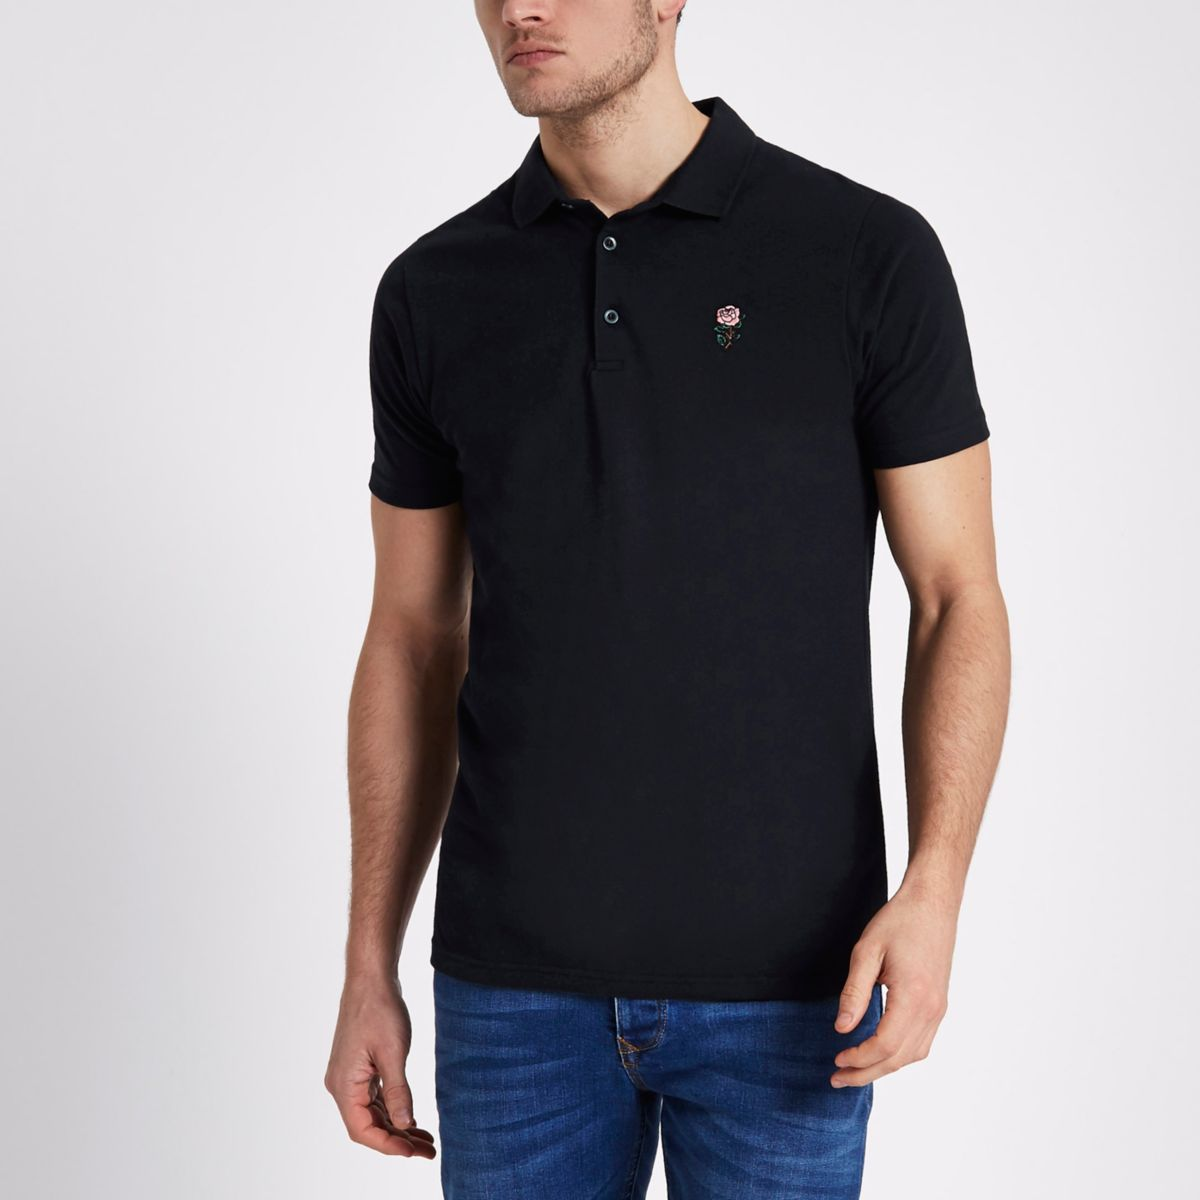 Navy rose embroidered slim fit polo shirt casual wear for Slim fit collared shirts